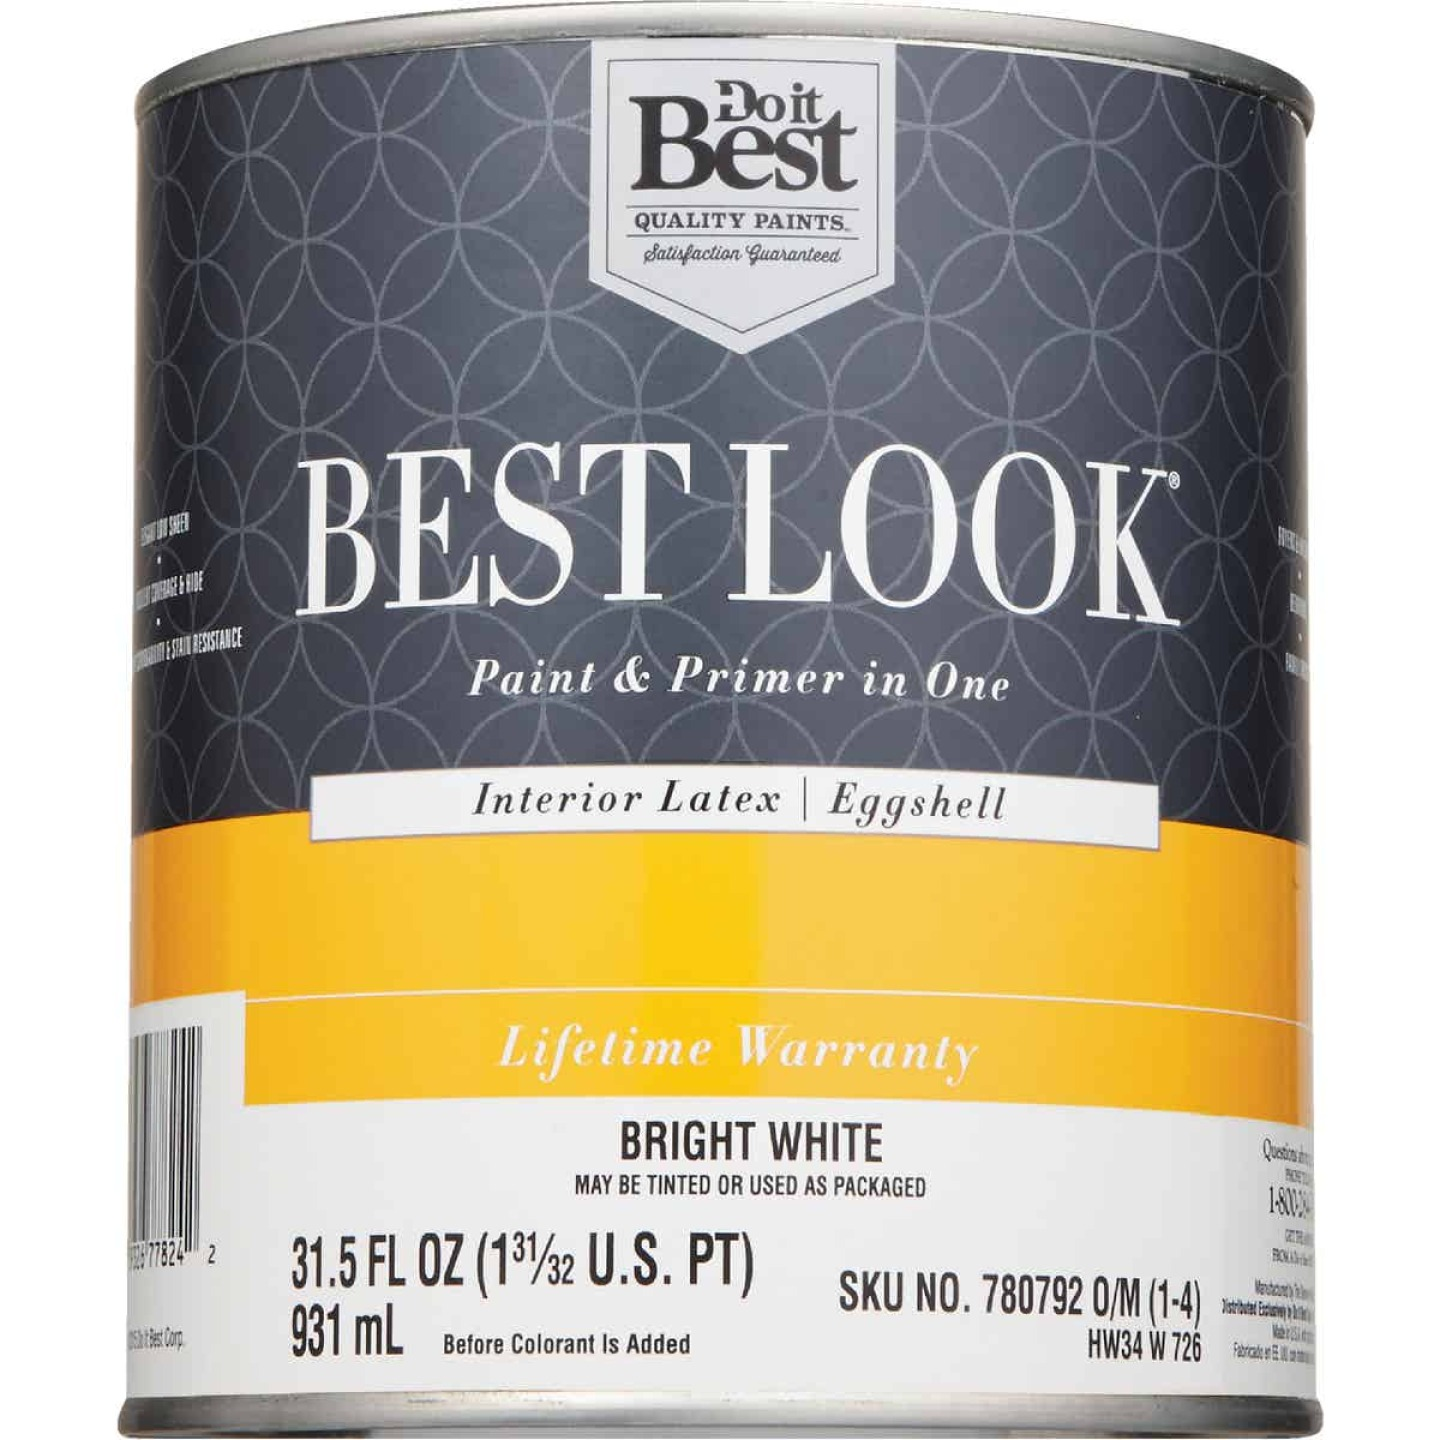 Best Look Latex Paint & Primer In One Eggshell Interior Wall Paint, Bright White, 1 Qt. Image 2